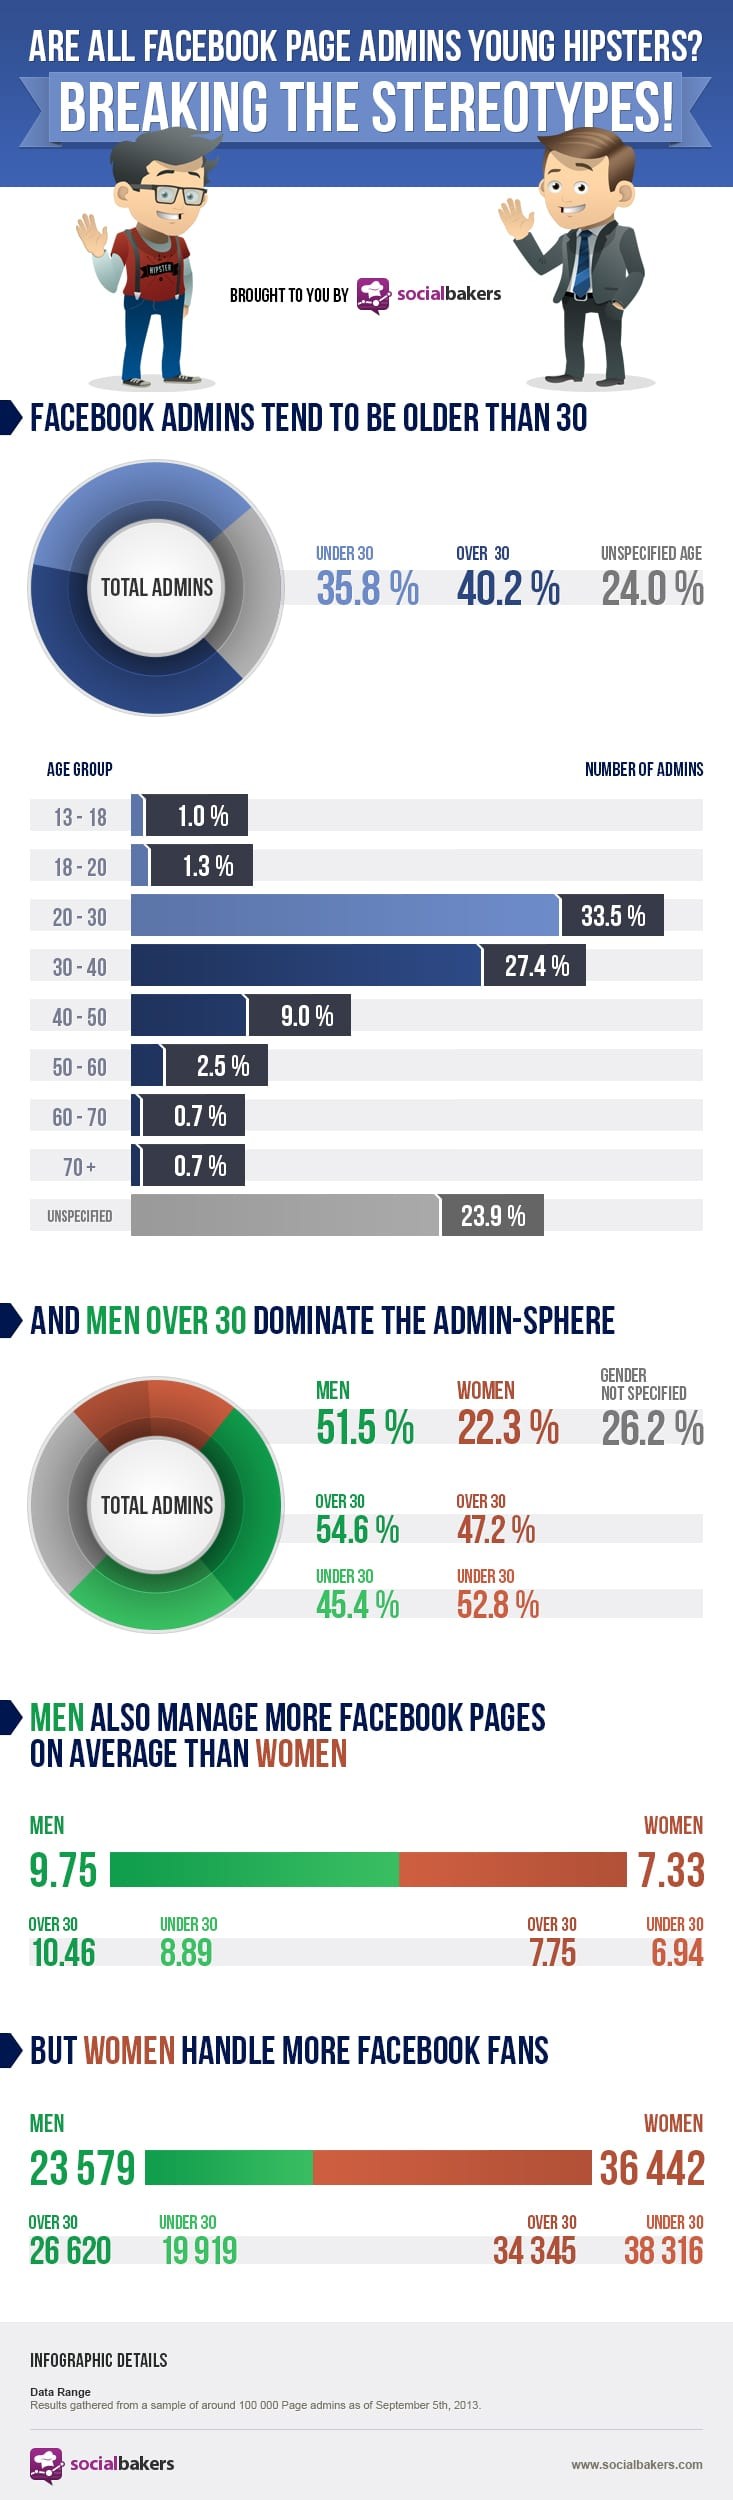 Surprise: Average Facebook Admin Is Older Than You Think [Infographic]